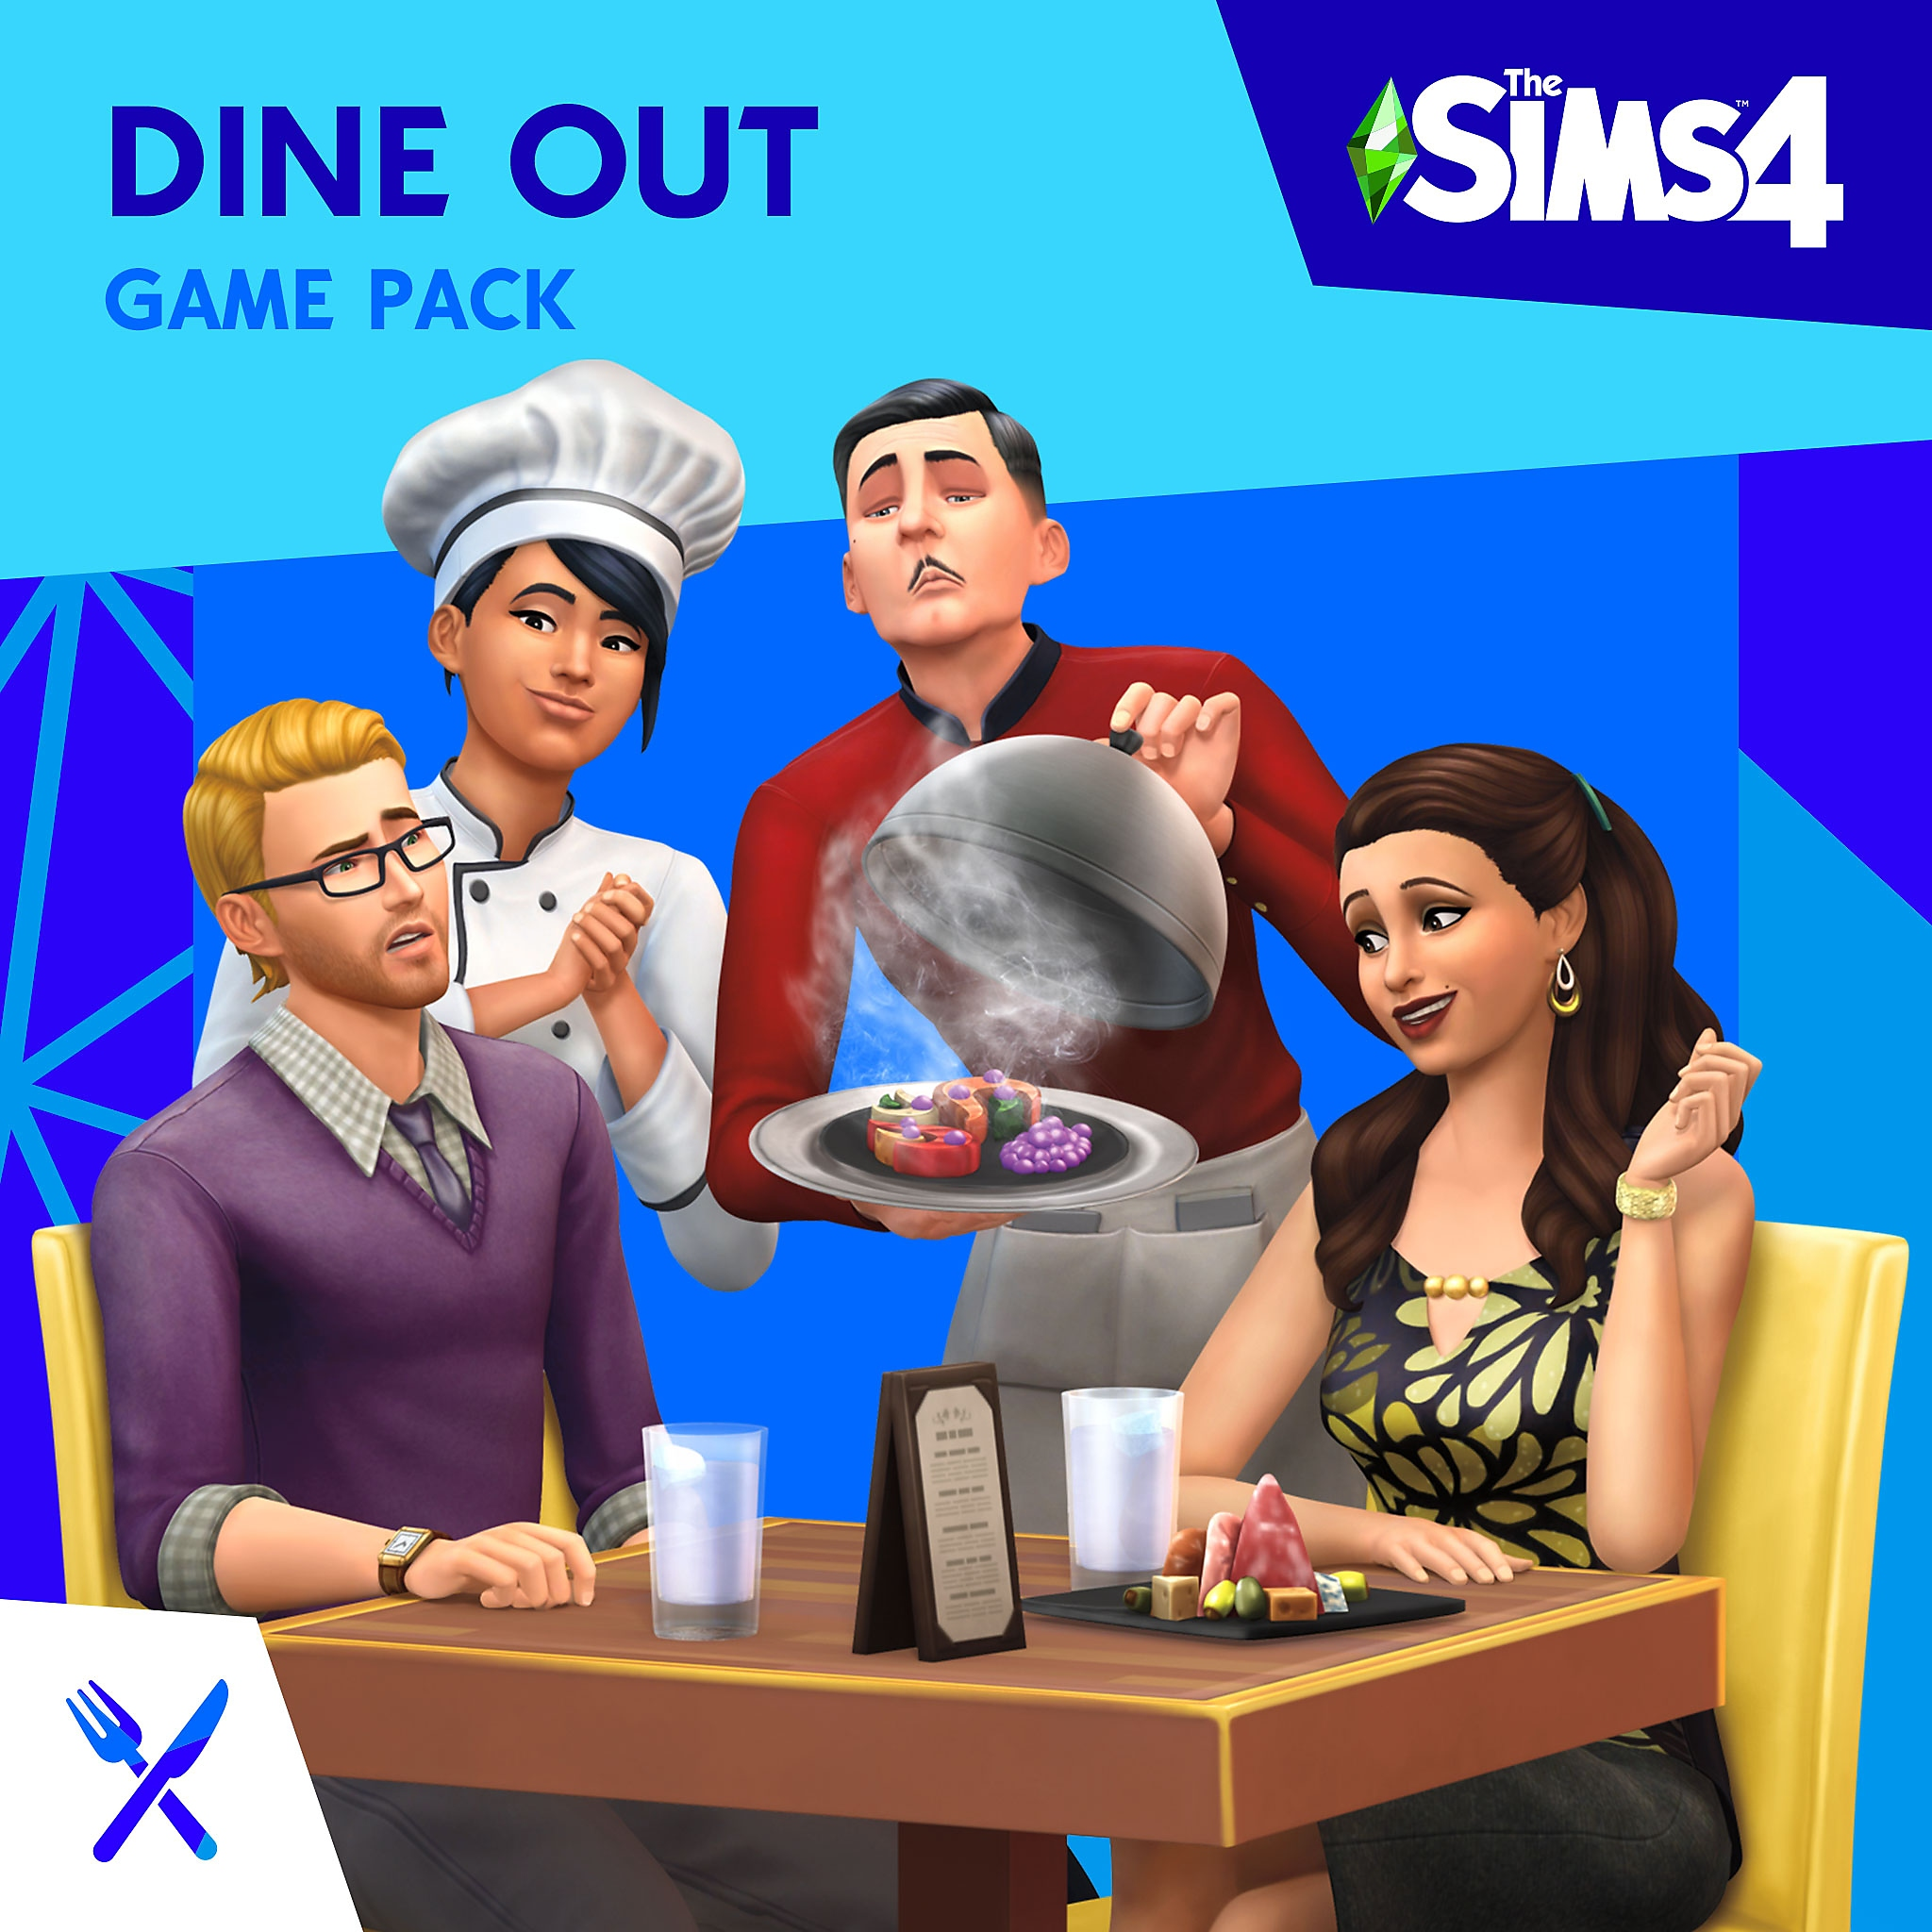 Dine Out Game Pack